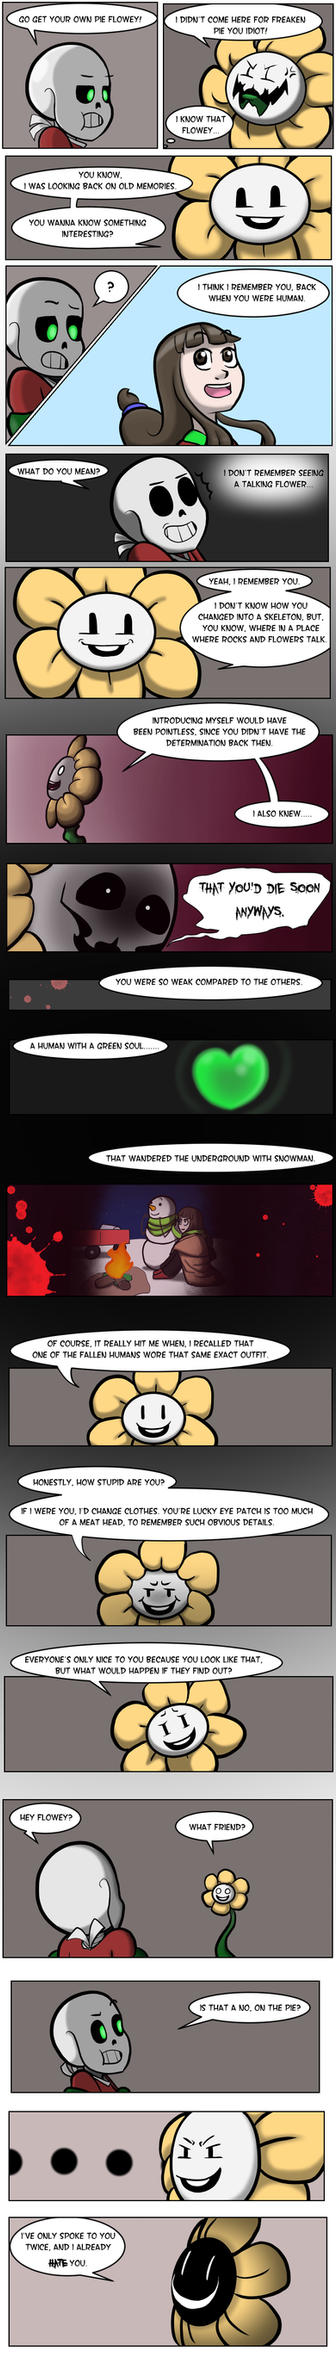 Undertale Green Chapter 3 Page 18 by FlamingReaperComic